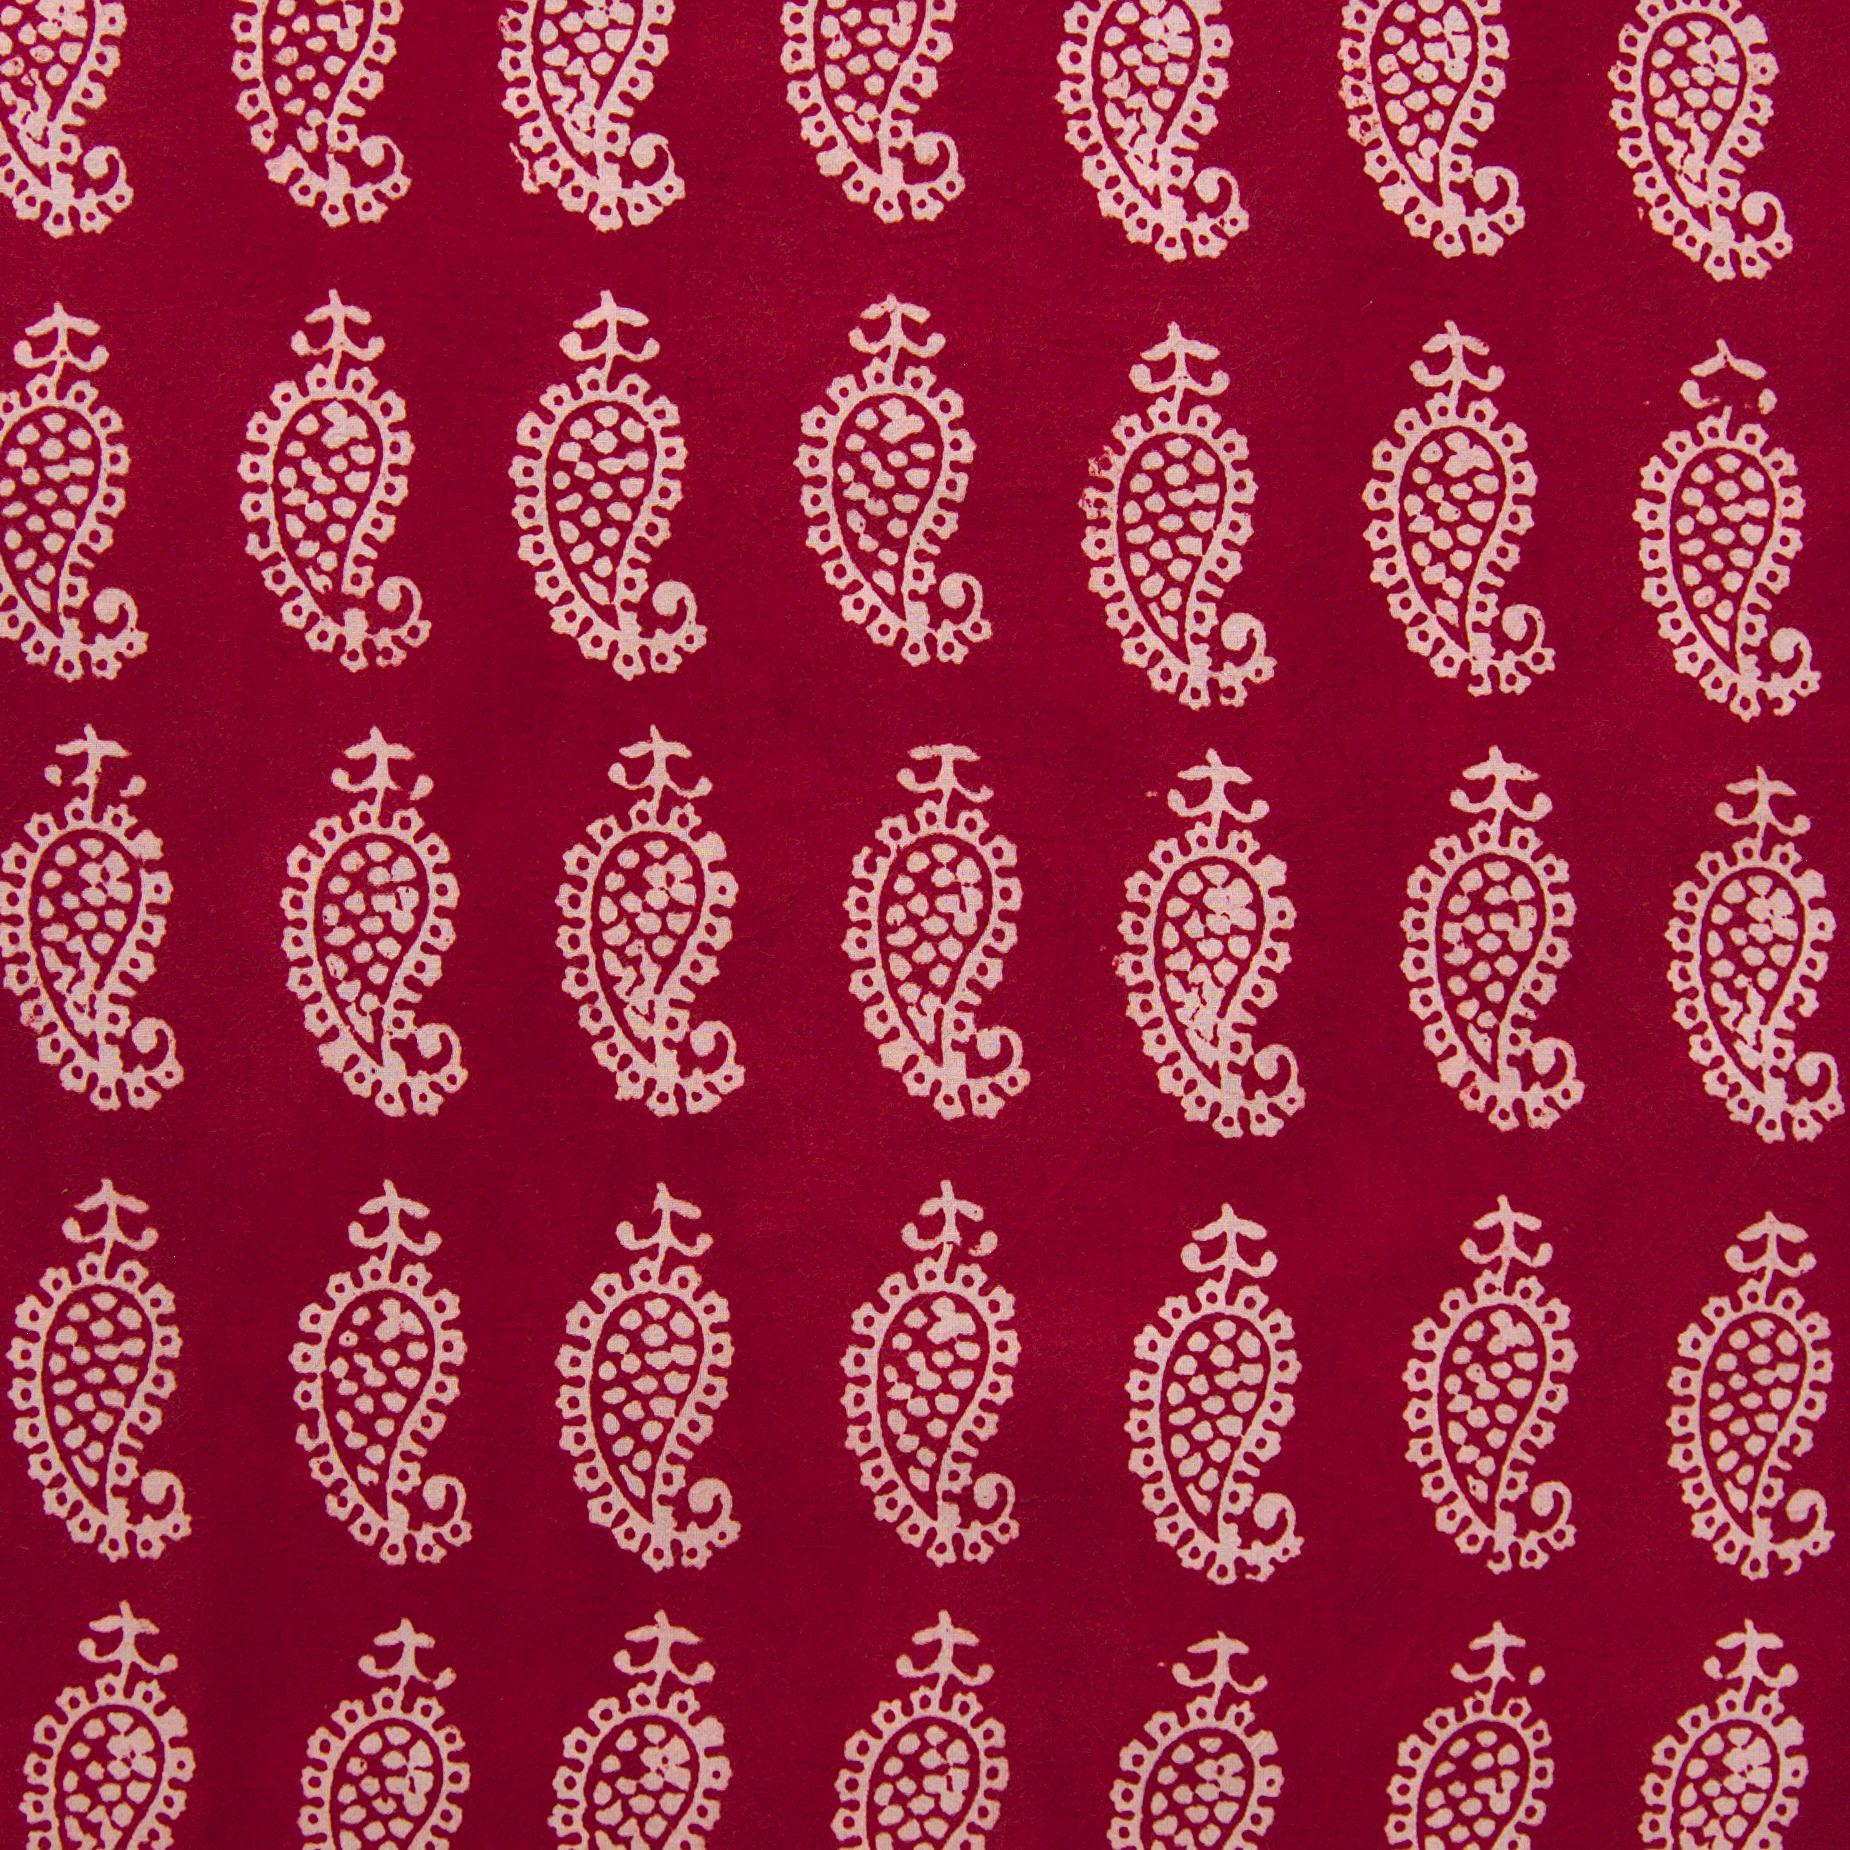 100% Block-Printed Cotton Fabric From India - Raindrops Design - Iron Rust Black & Alizarin Red Dyes - Flat - Live